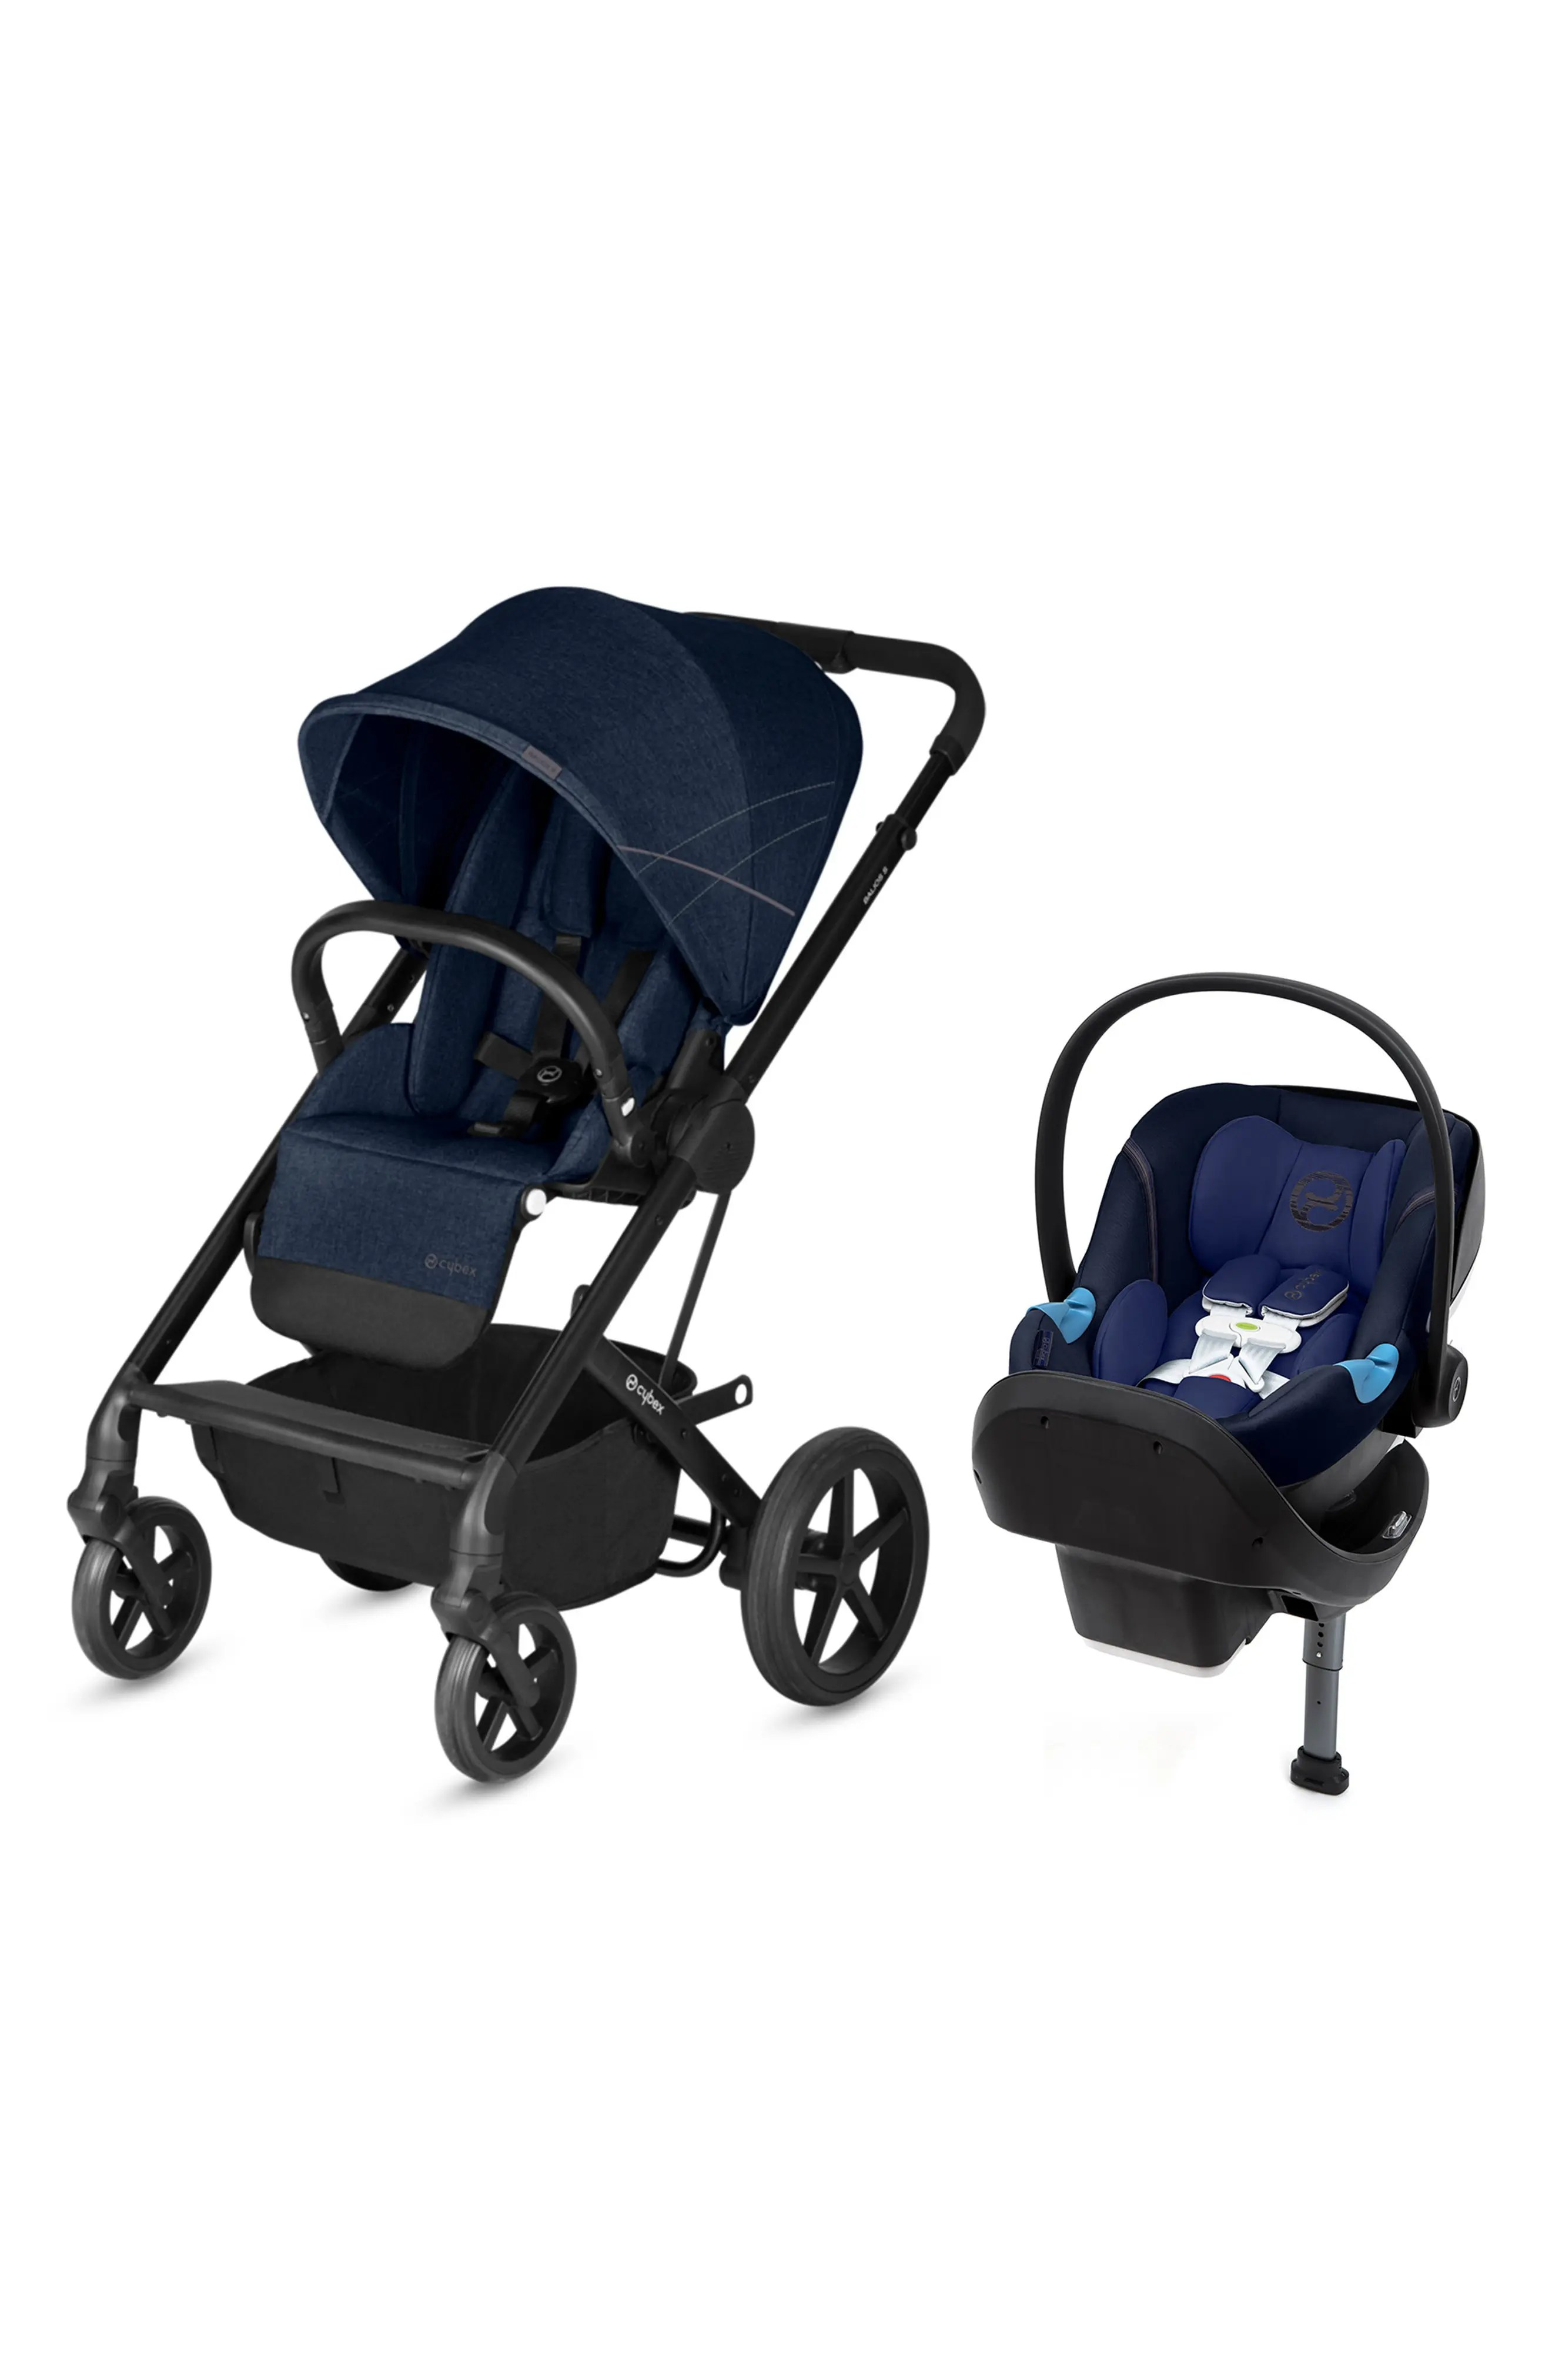 Joolz Buggy Board Uk Best Uk Baby Travel System Pushchairs 2019 And Where To Buy